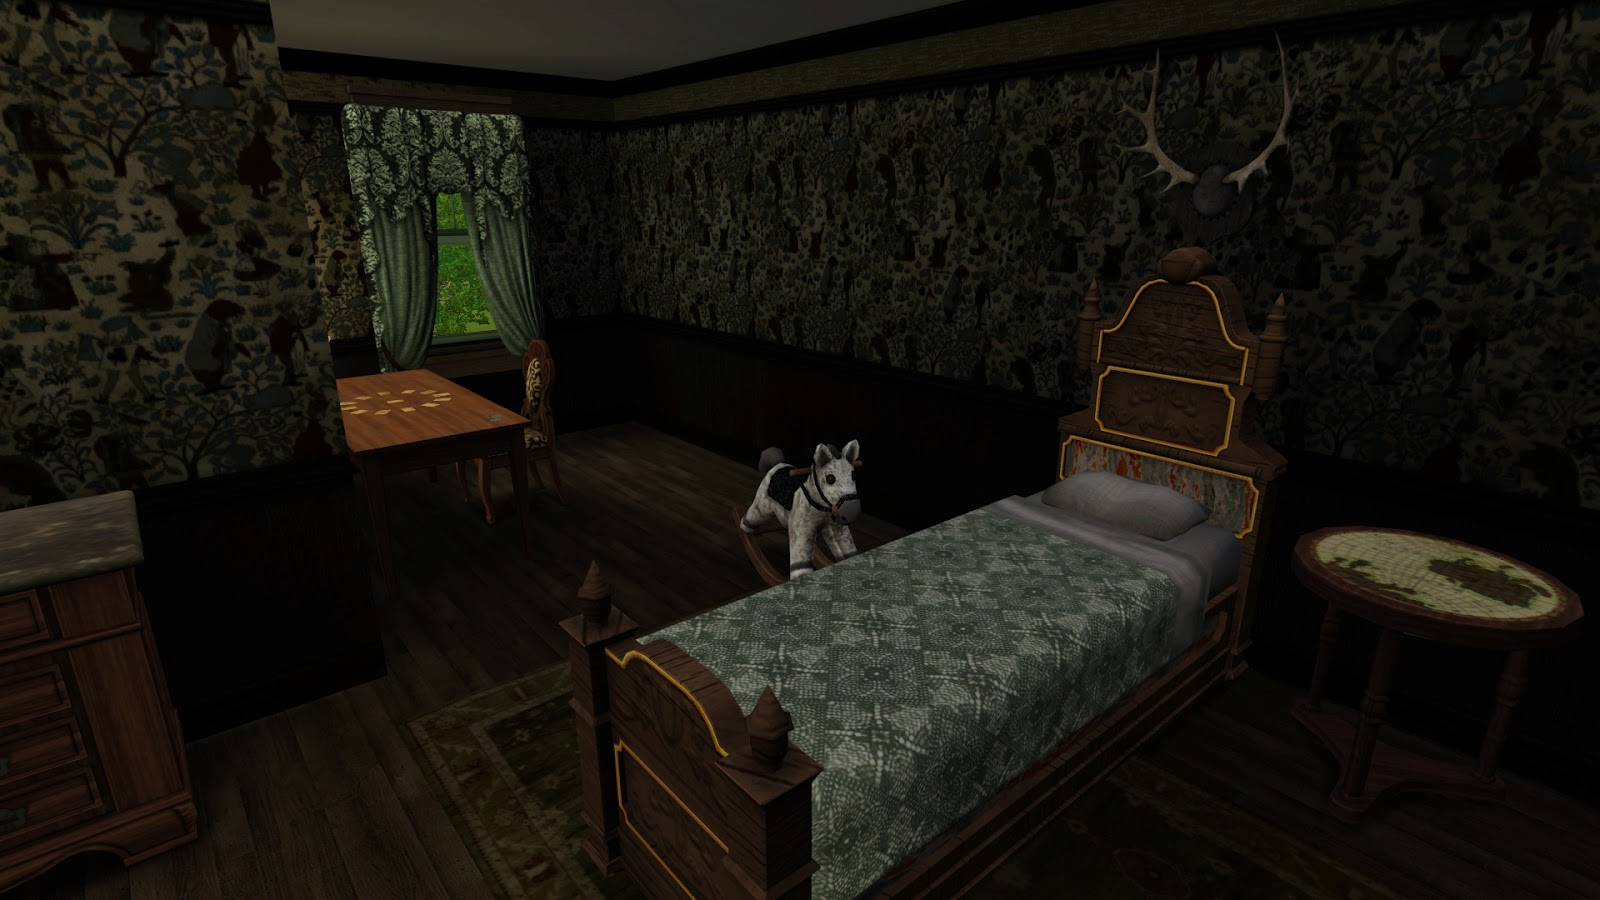 Spooky room for kids with spooky room for Raton pass motor inn